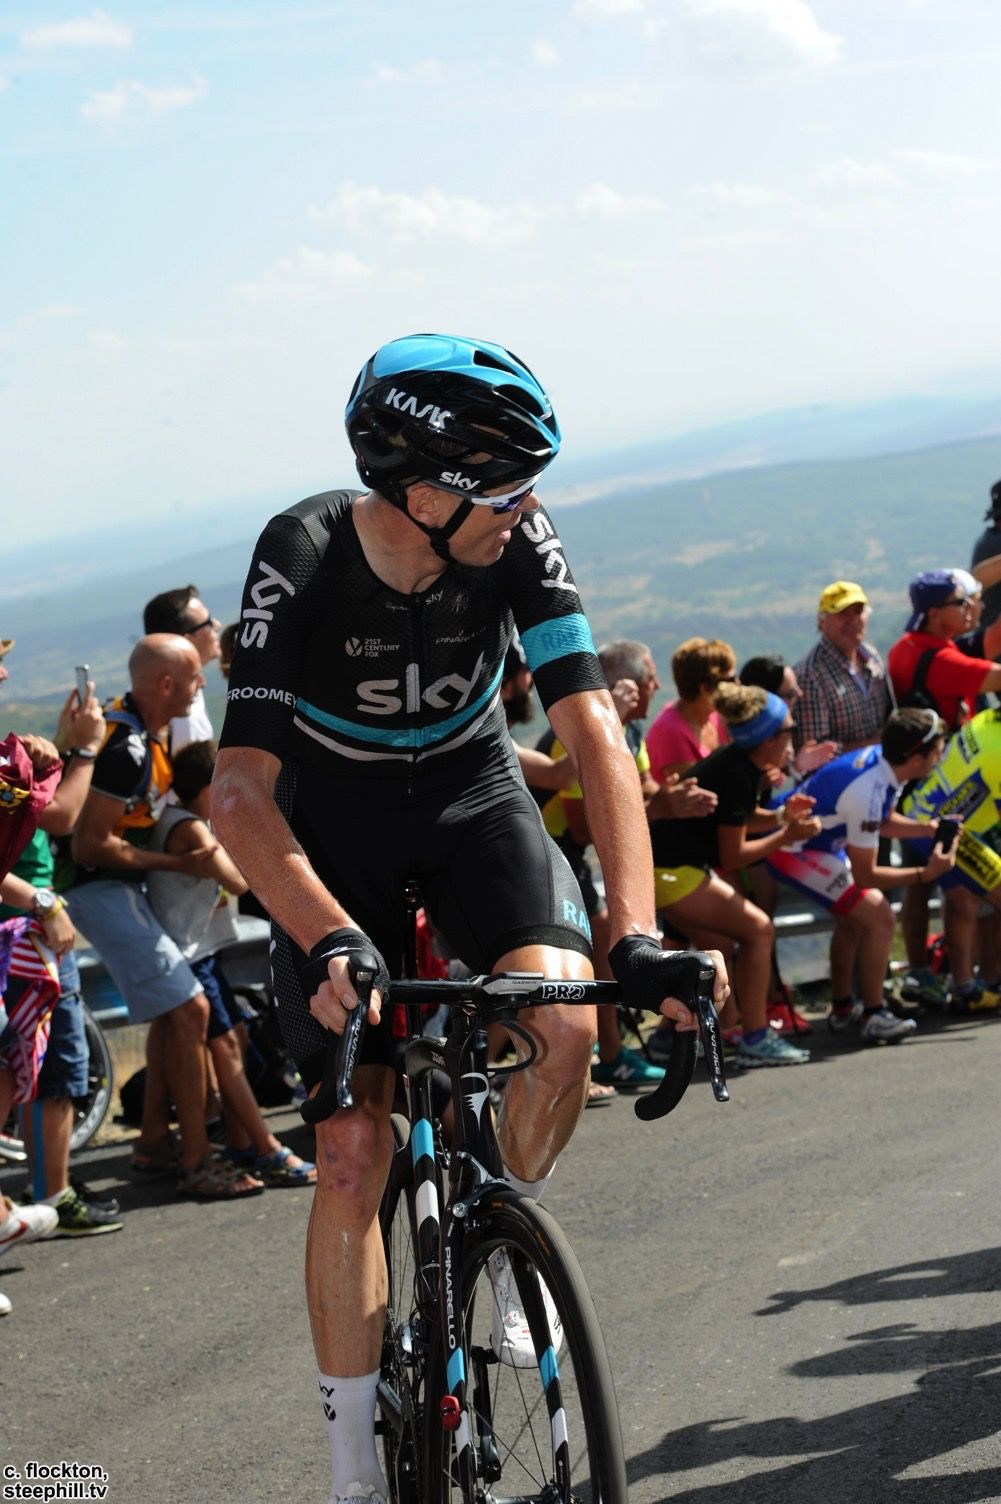 Chris Froome Stage 8 Vuelta a Espana 2016